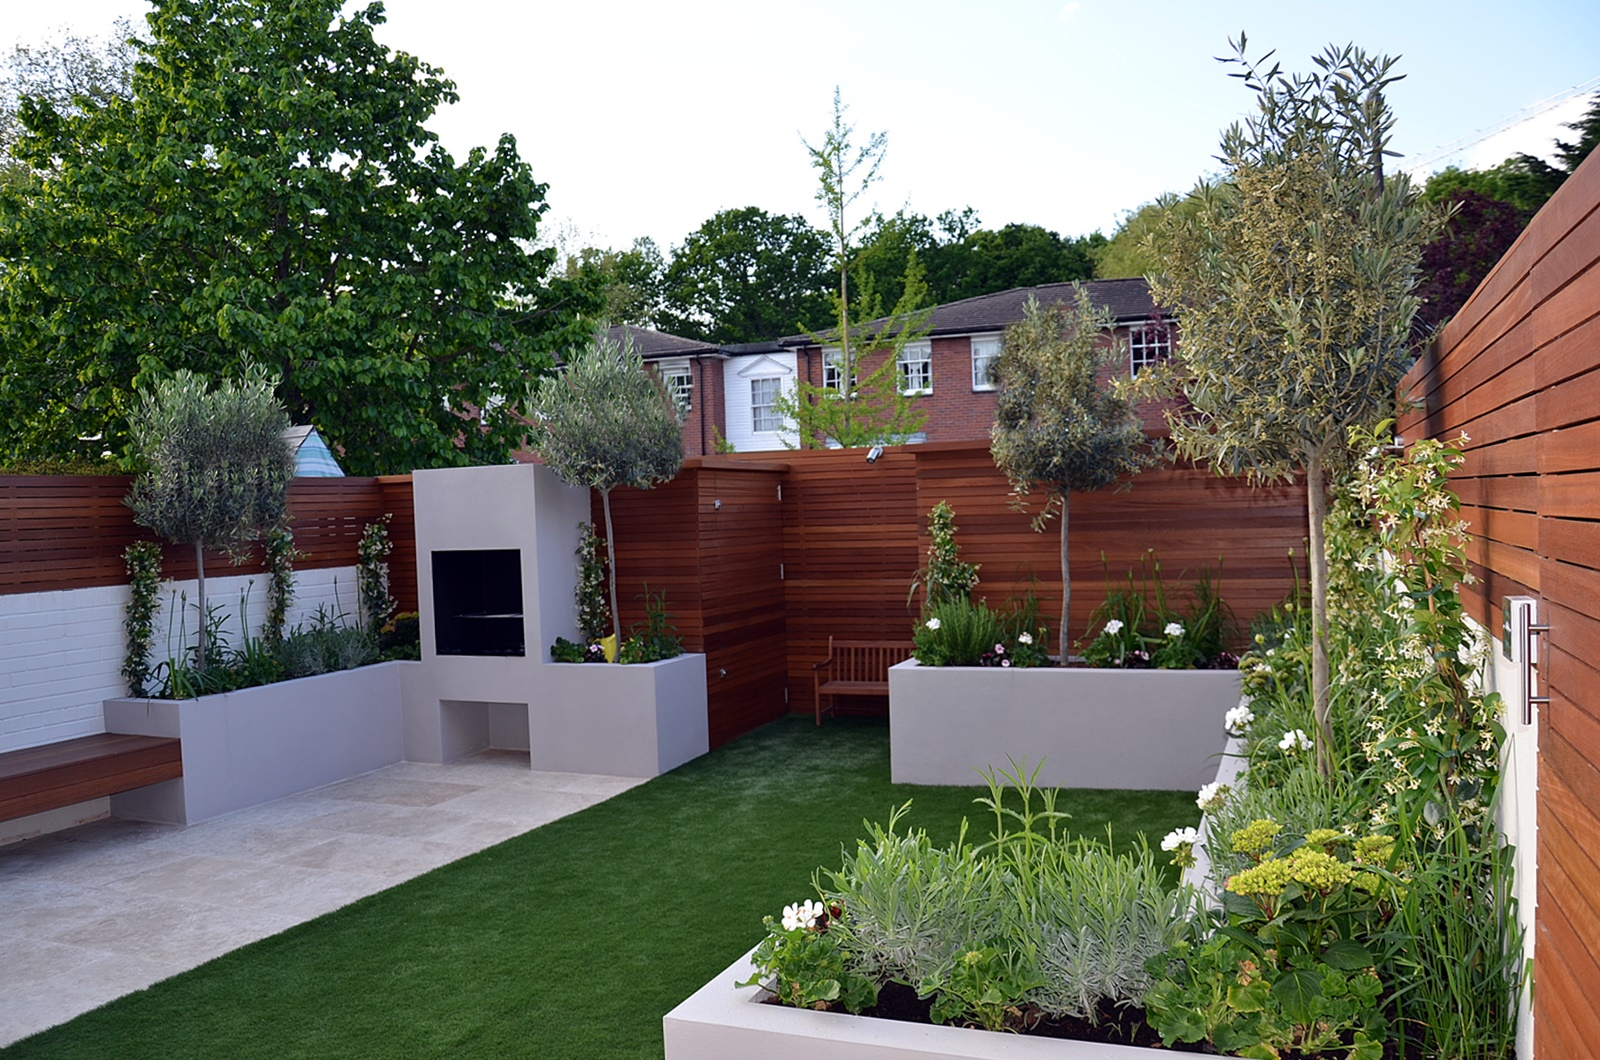 contemporary hardwood screen fence trellis slatted bbq fireplace raised beds artificial grass